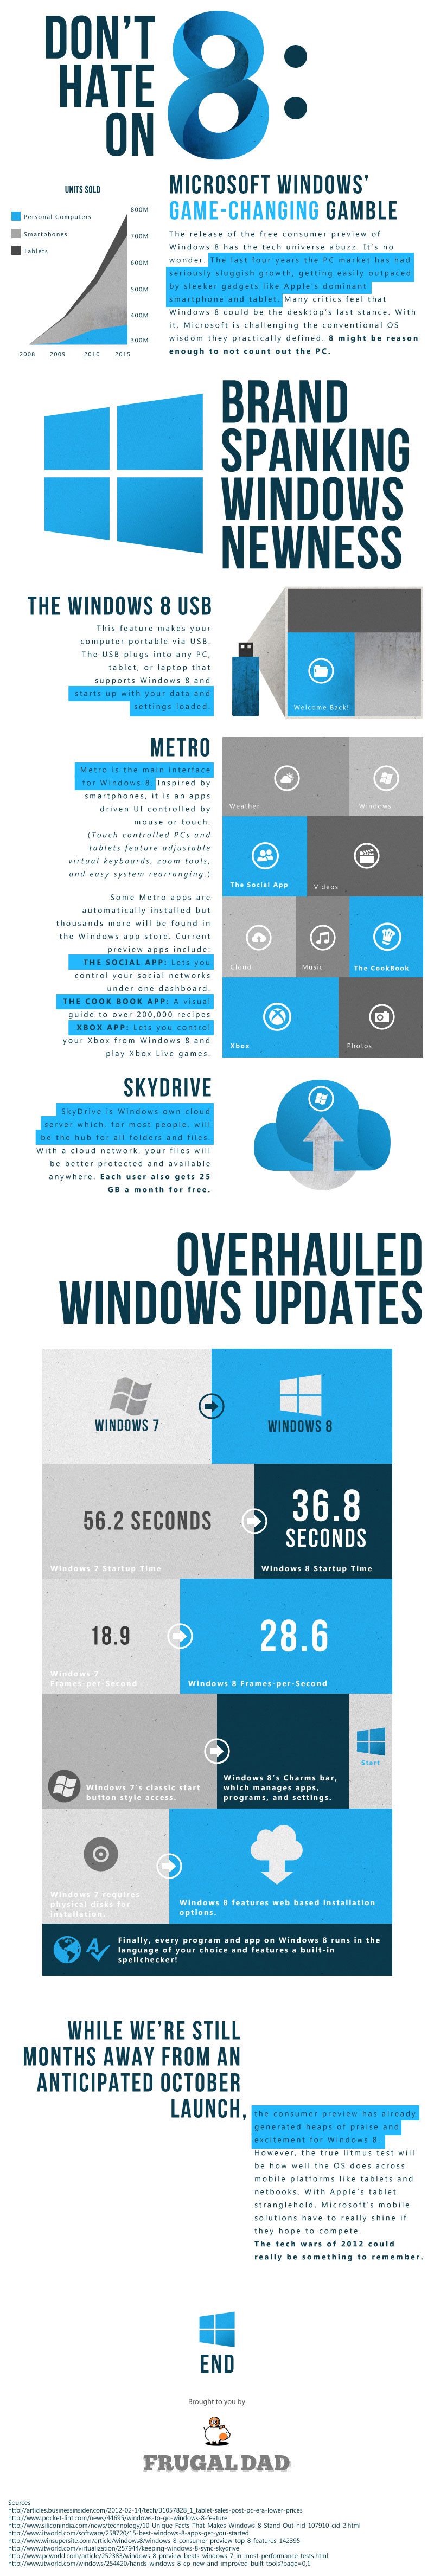 Don't Hate On Windows 8-Infographic